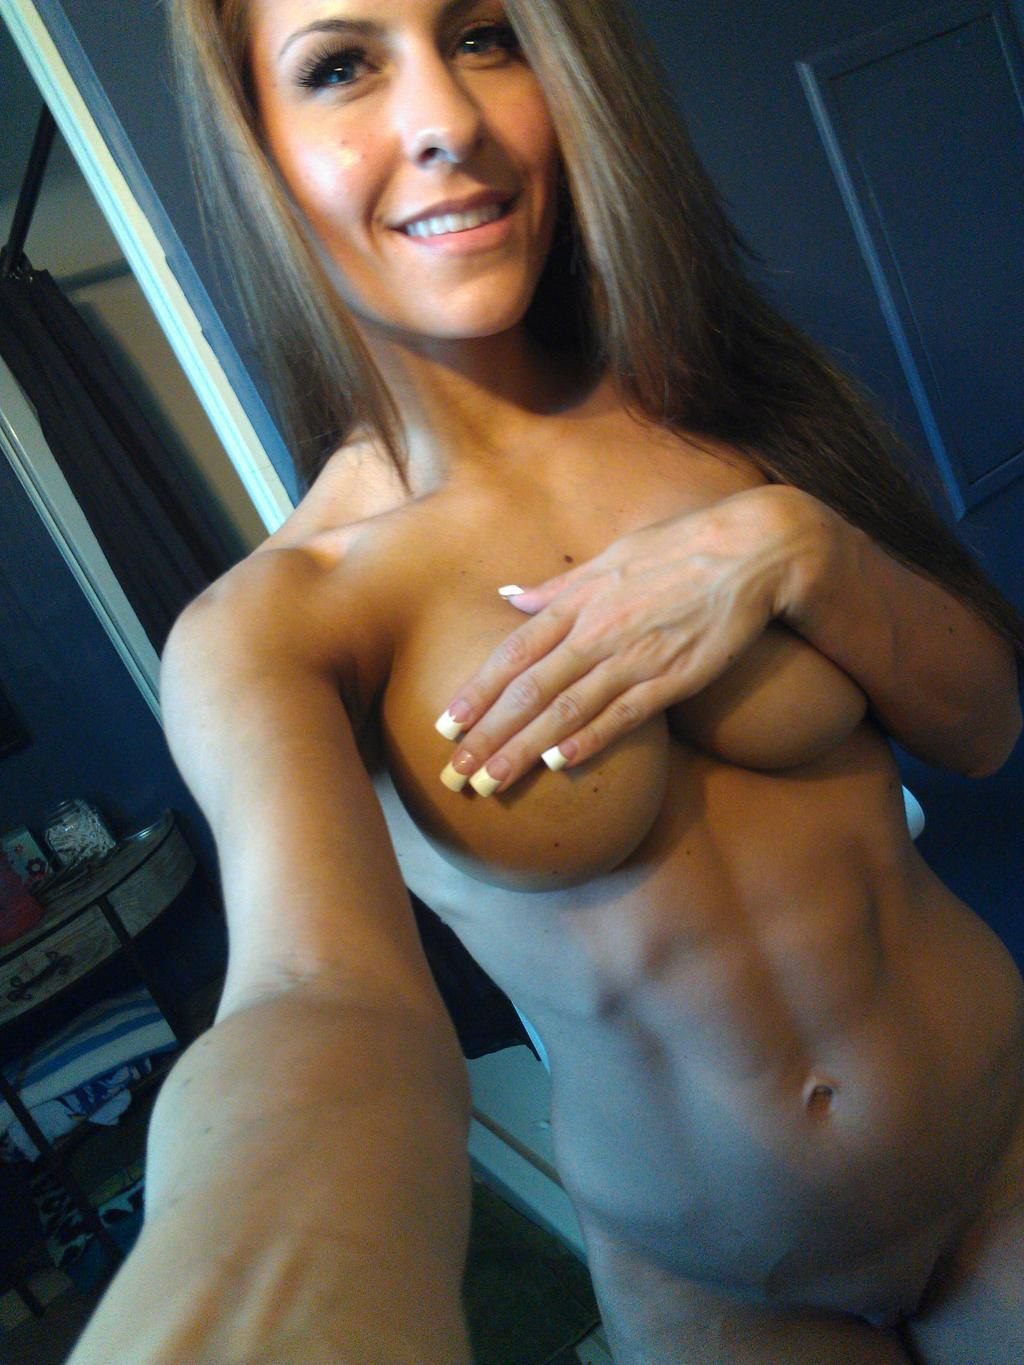 Self shots of fitness girls nude, old strecth pussy